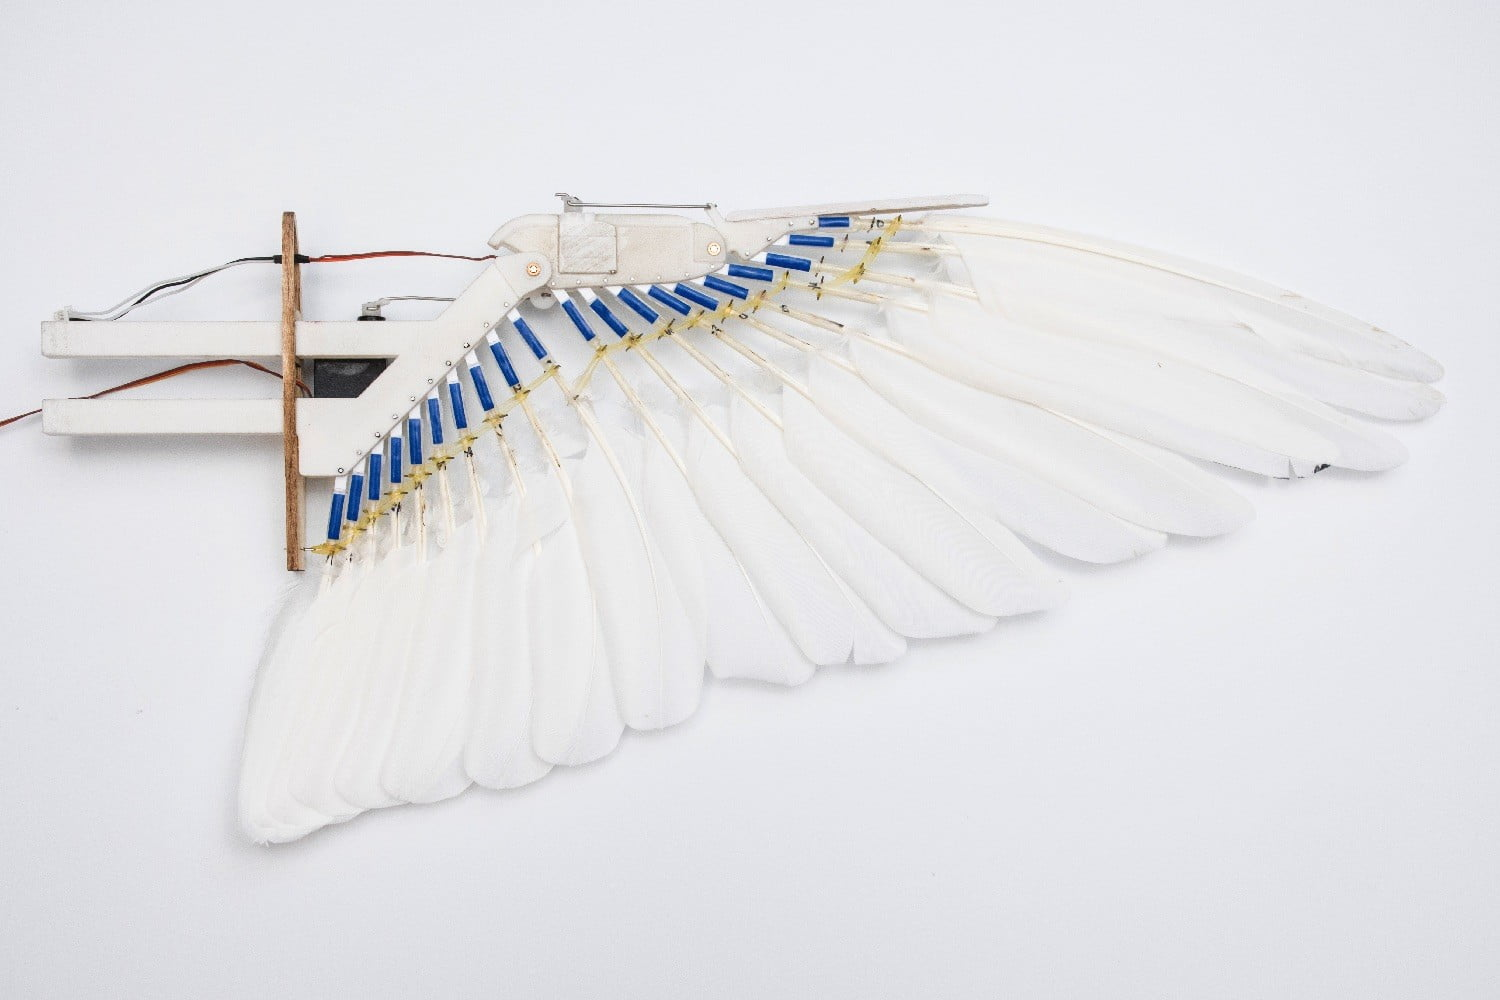 pigeon bot feather drone takes flight dl0 8209 3